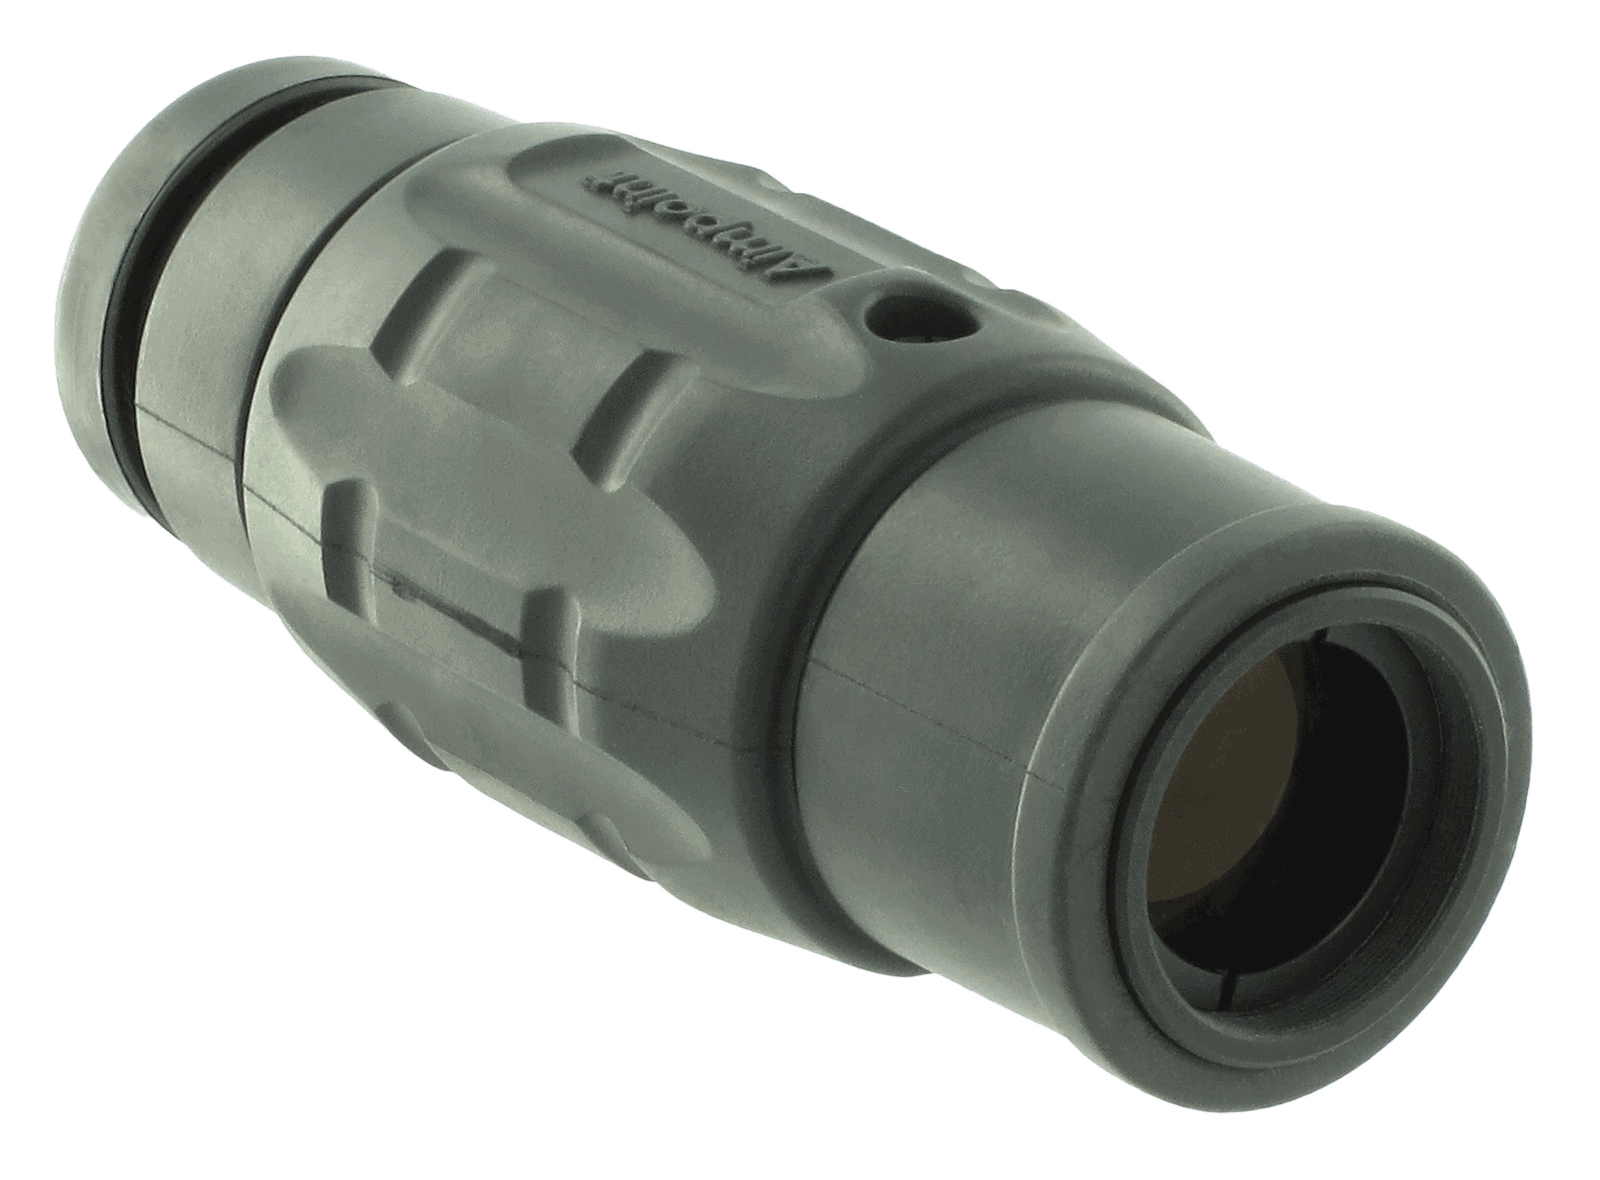 Aimpoint 3X Mag Magnifier